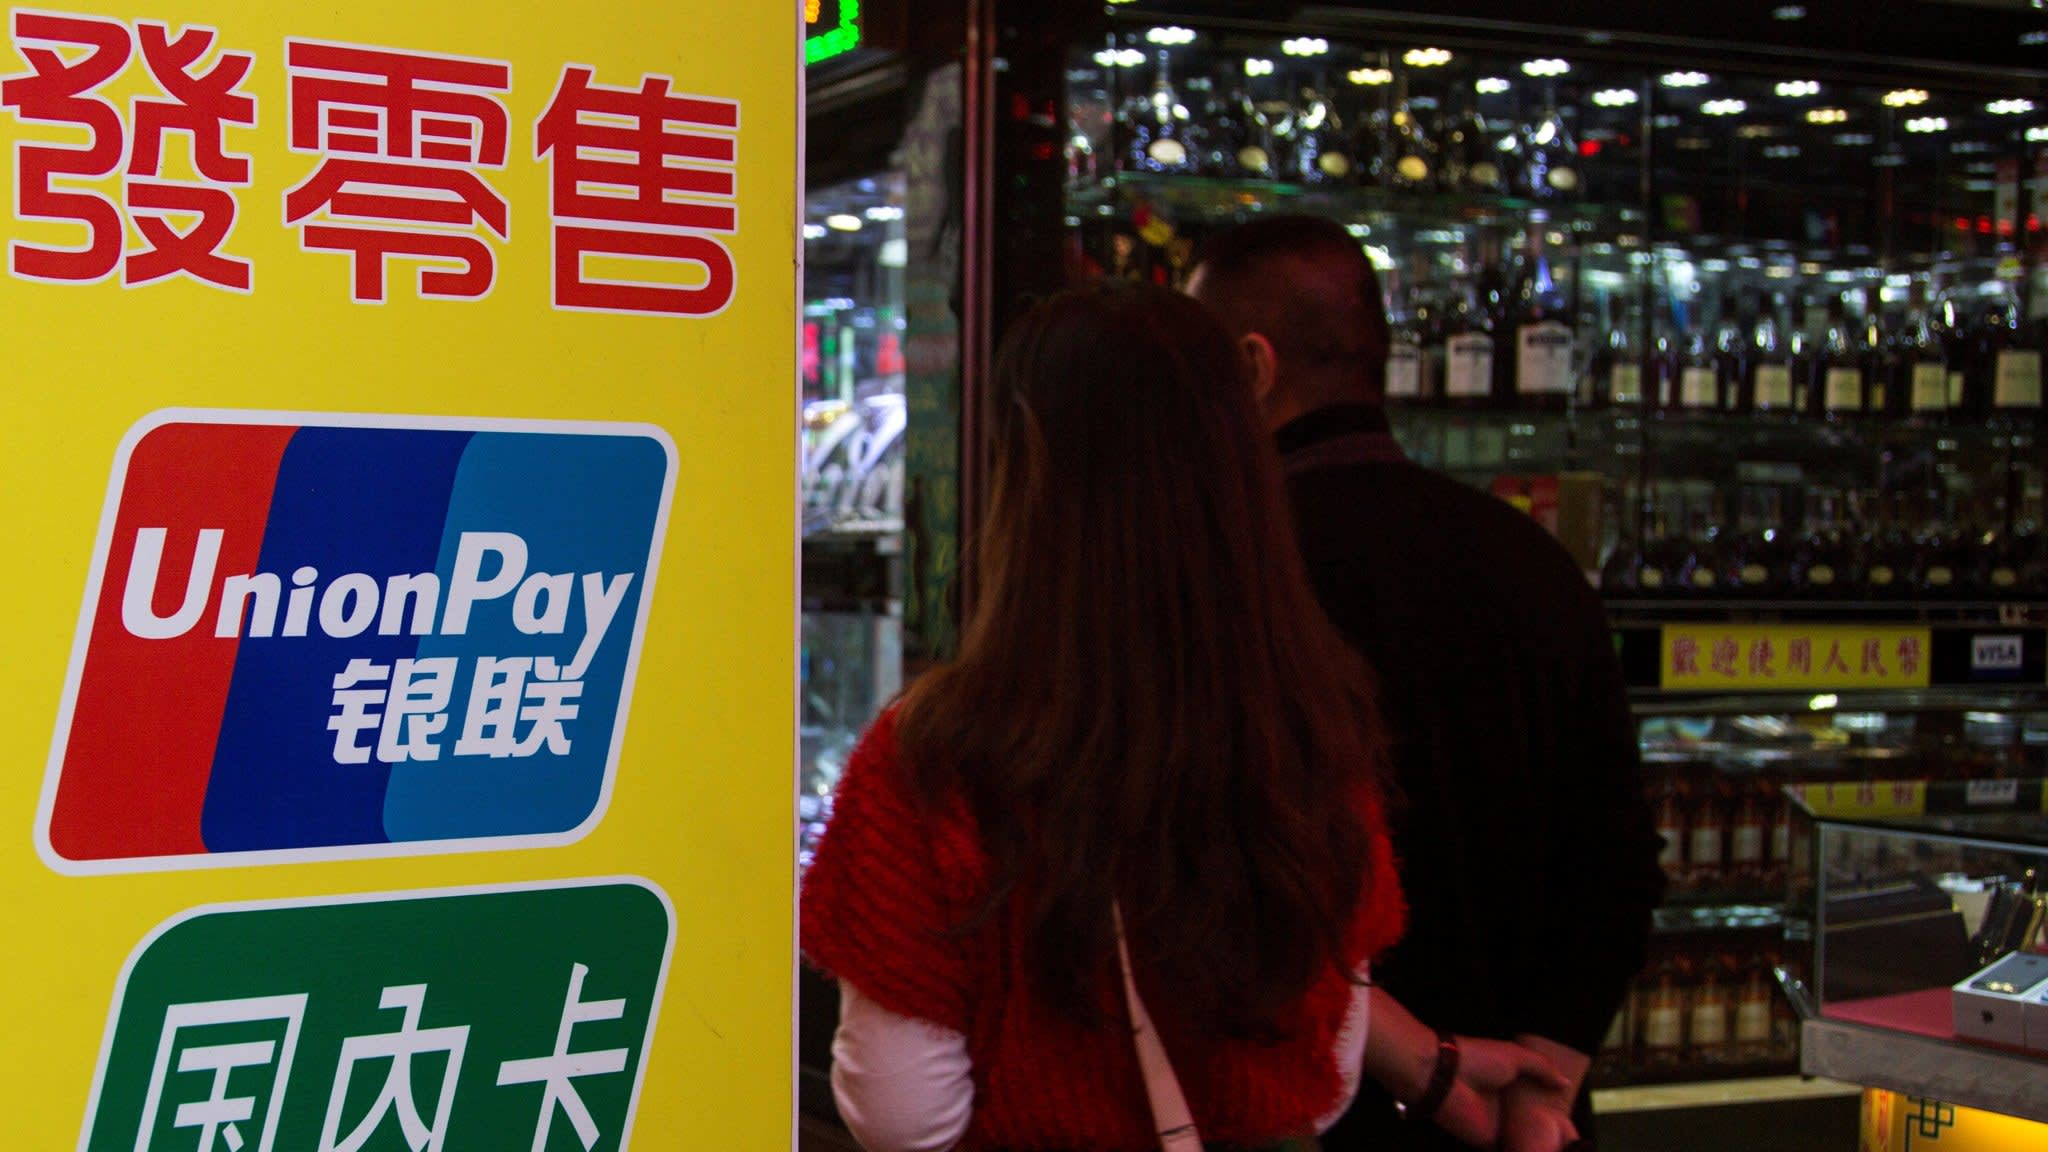 China UnionPay kicks off European expansion with UK launch